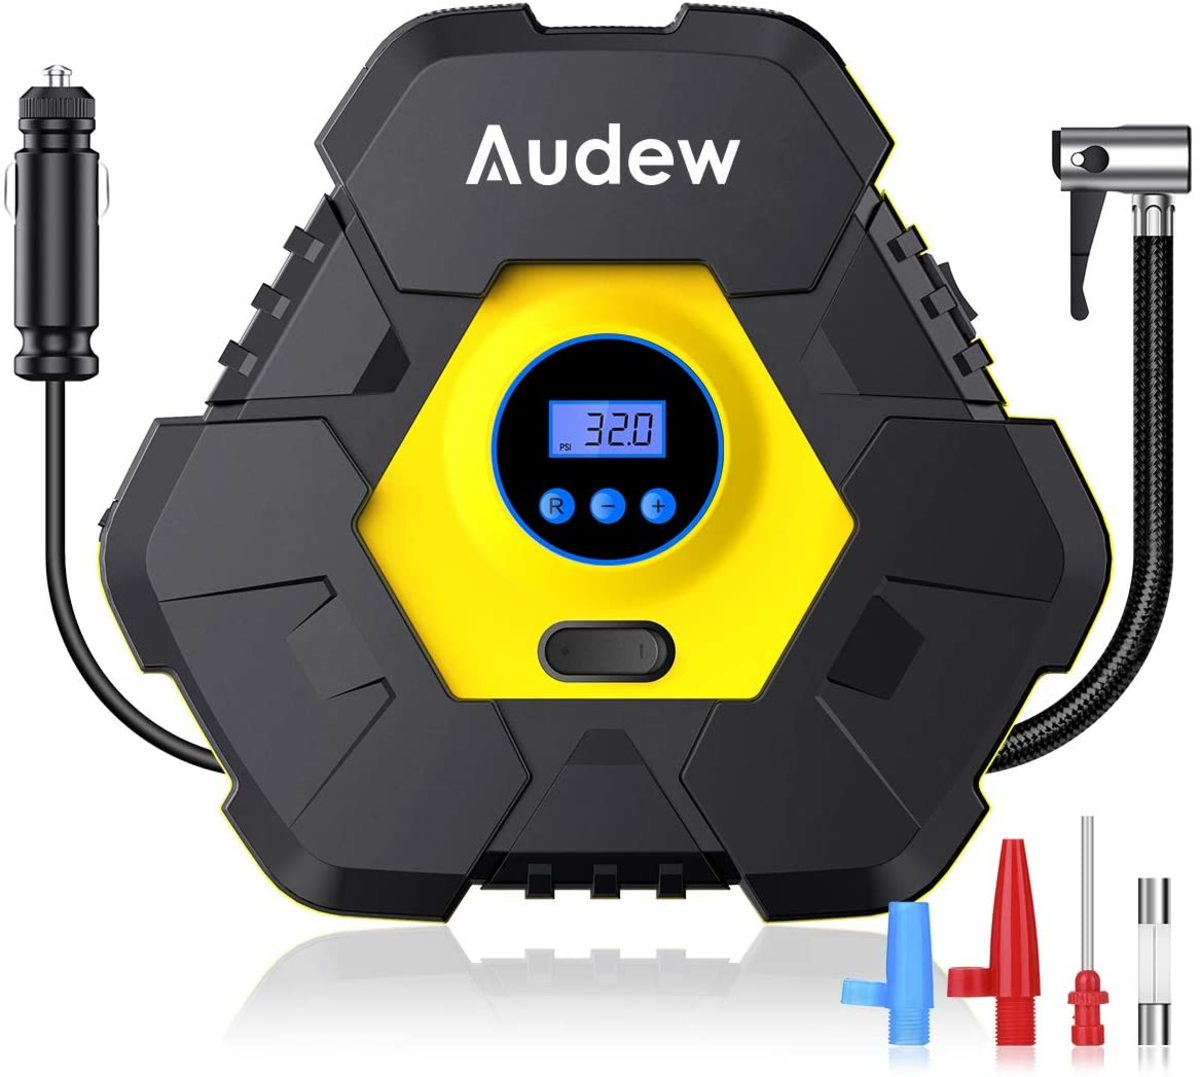 The Audew portable tire inflator